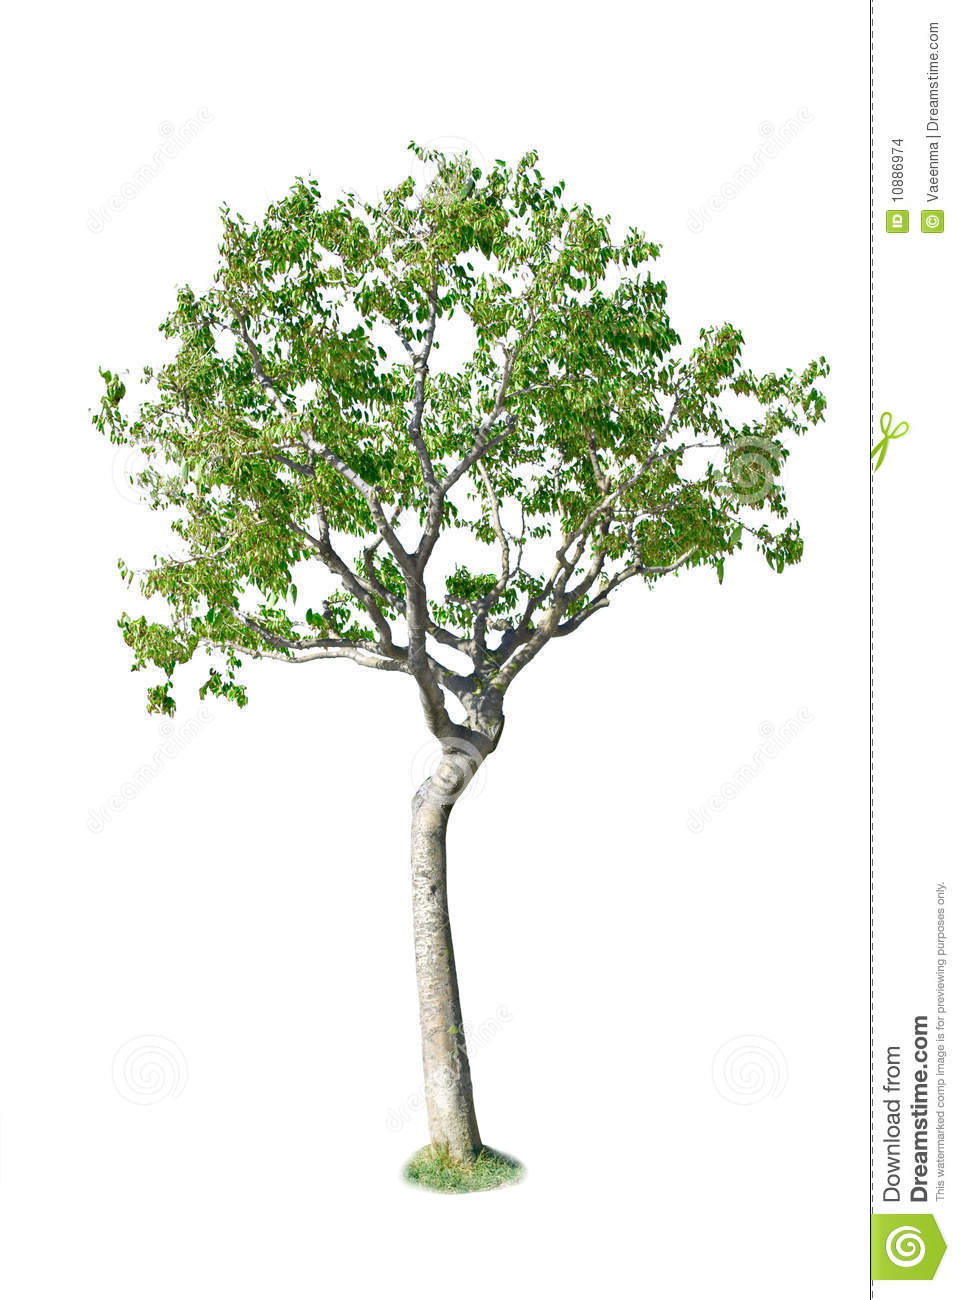 Birch Tree Stock Images - Image: 10886974